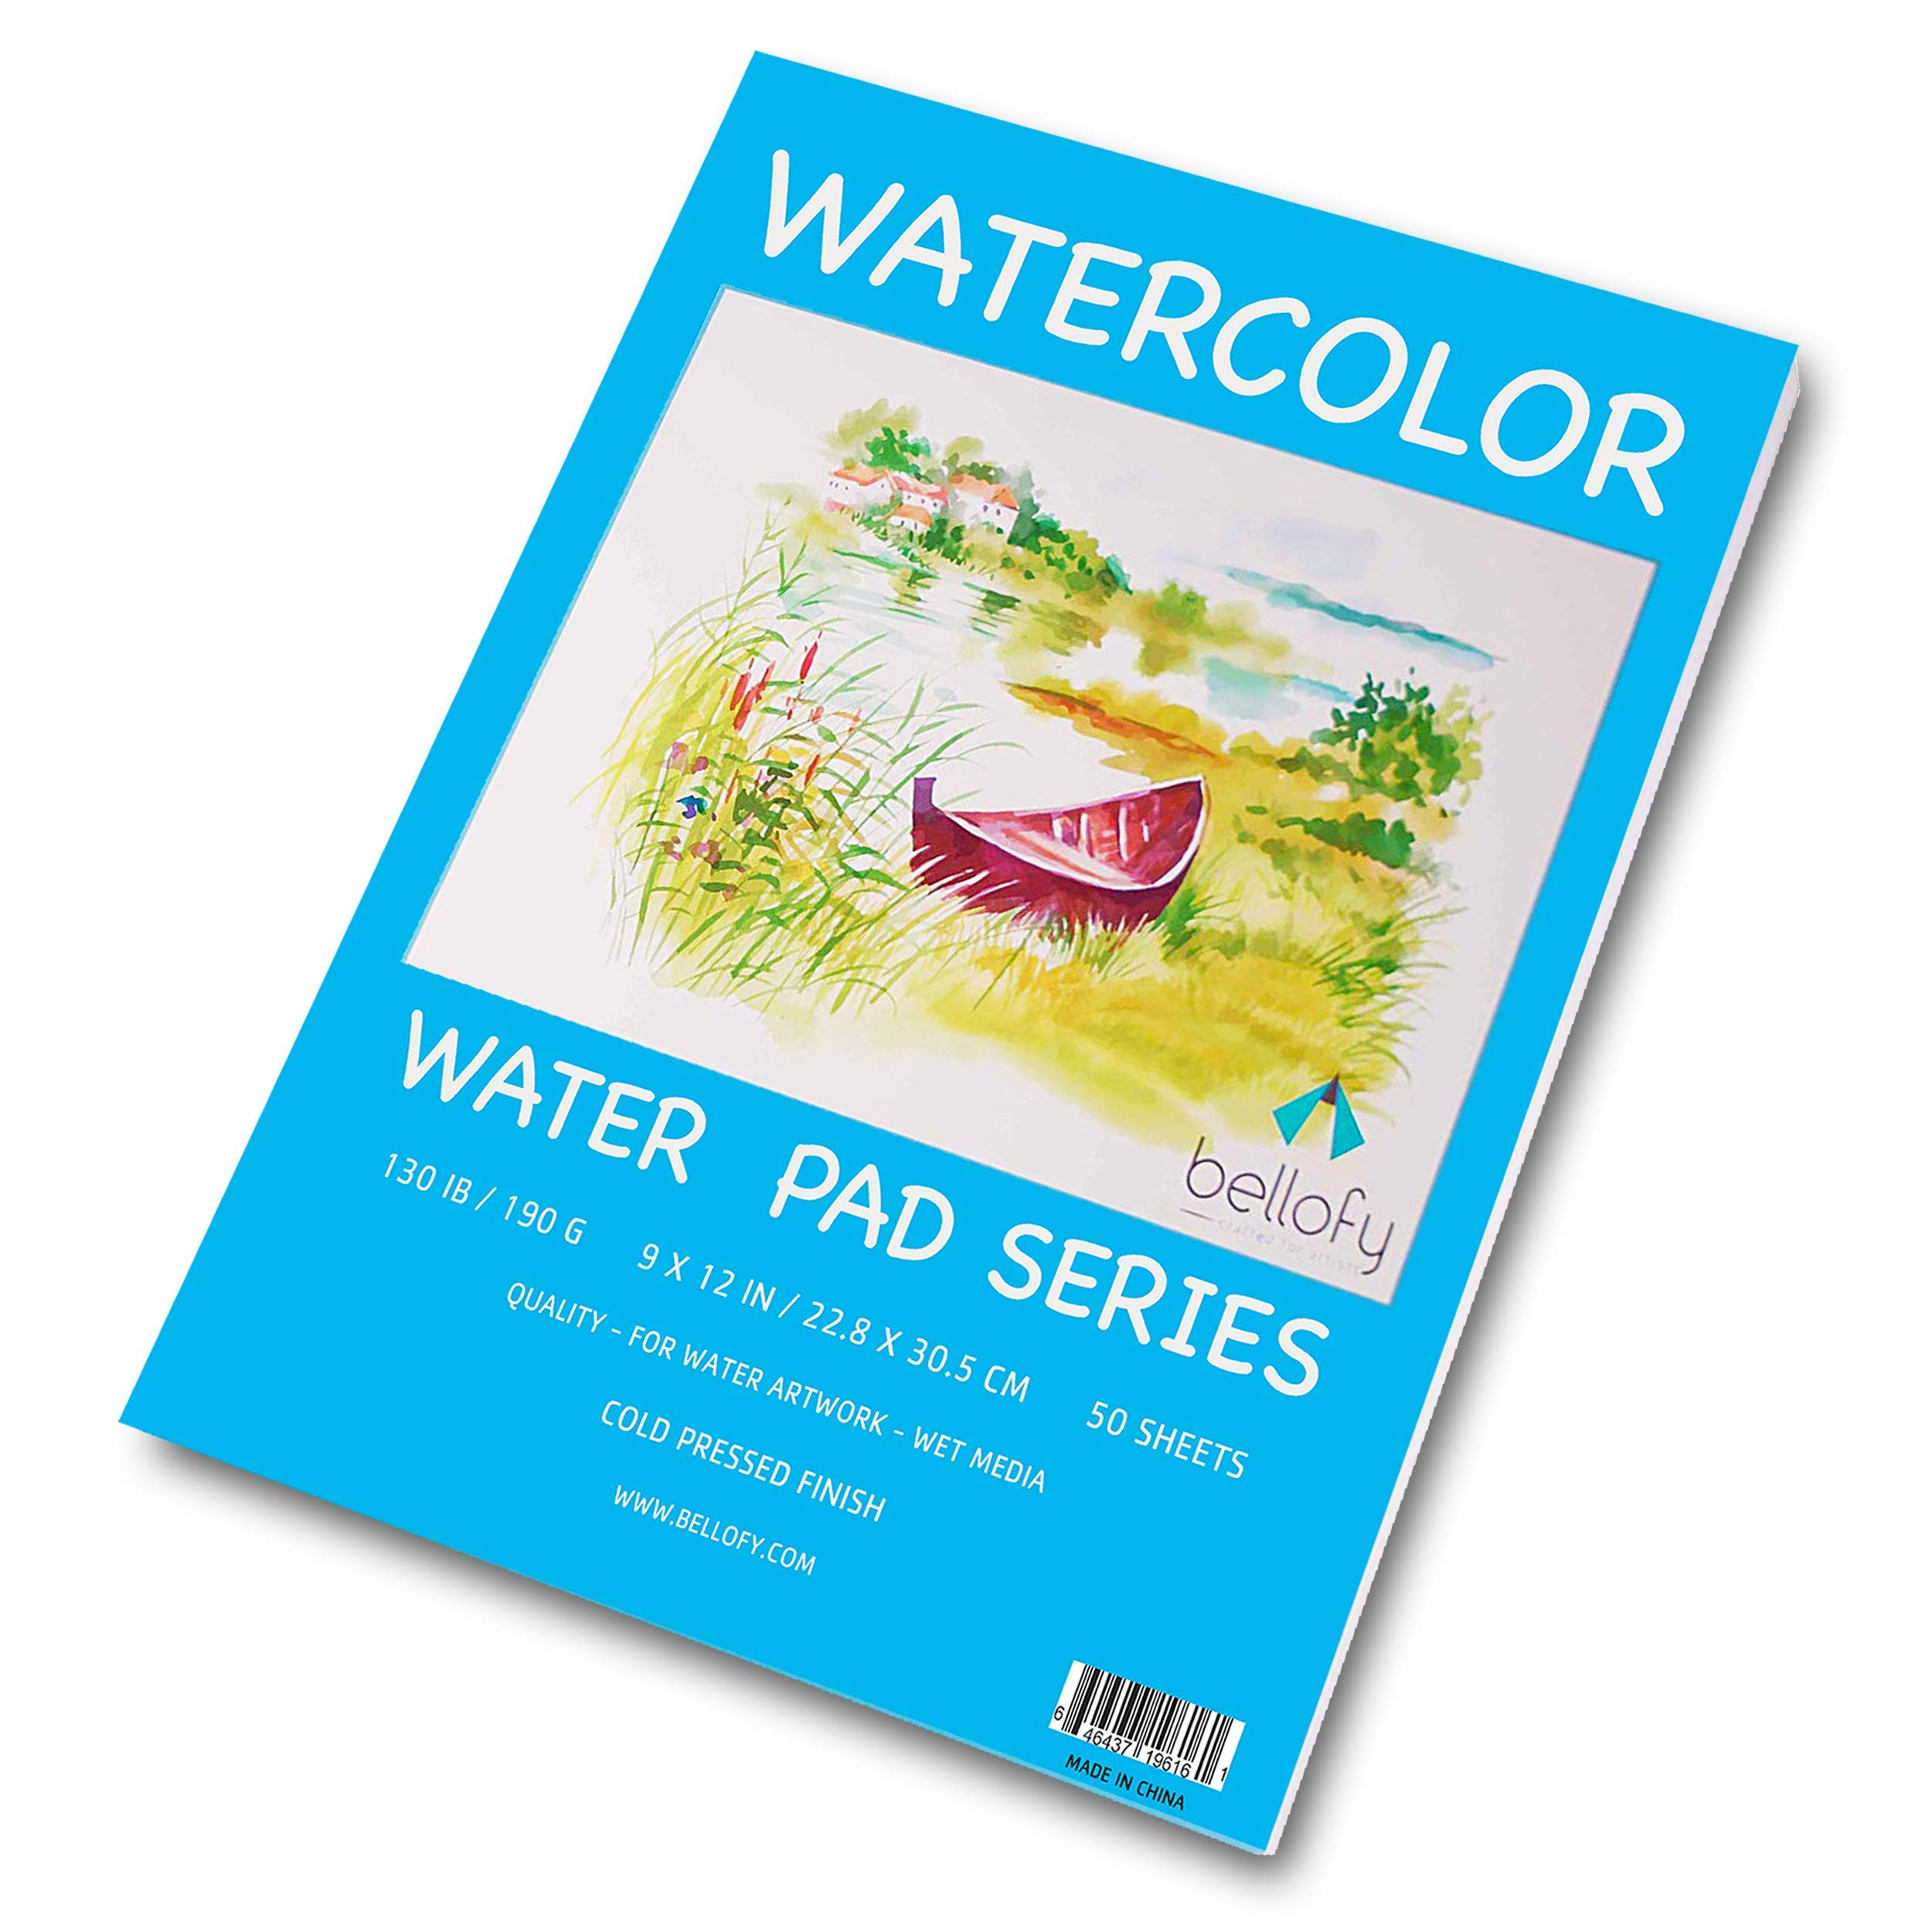 Bellofy 50 Sheet Watercolor Paper Pad - 130 IB / 190 GSM Weight - 9x12 in Size - Cold Press Paper - Water Painting Art Notebook Pad - Watercolor Sketchbook - Painting Paper - Watercolor Journal by Bellofy